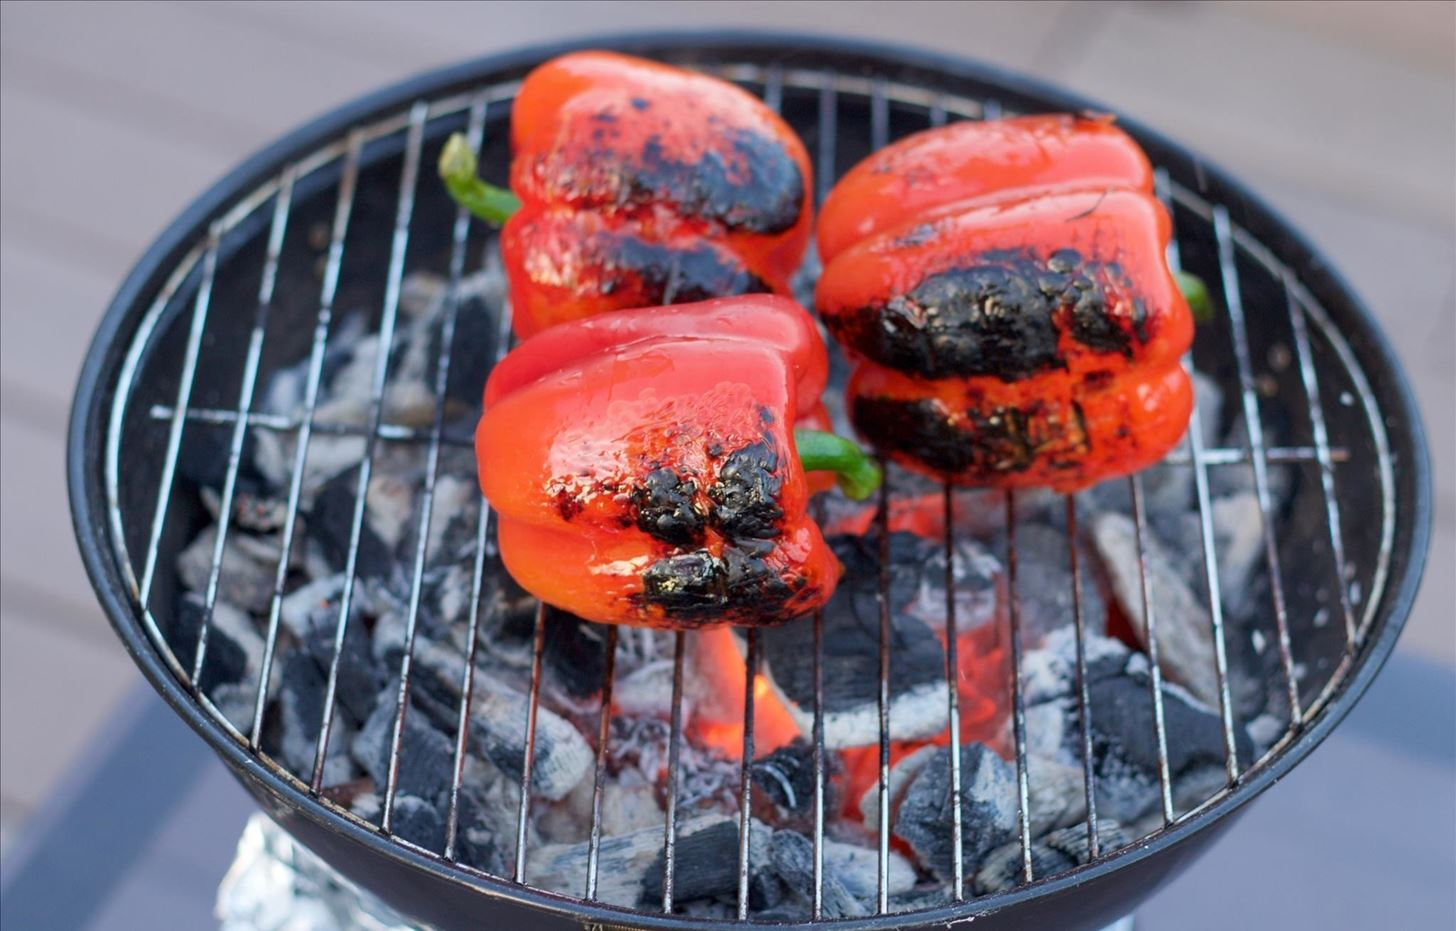 Get Your Master Griller's License with These BBQ Tips